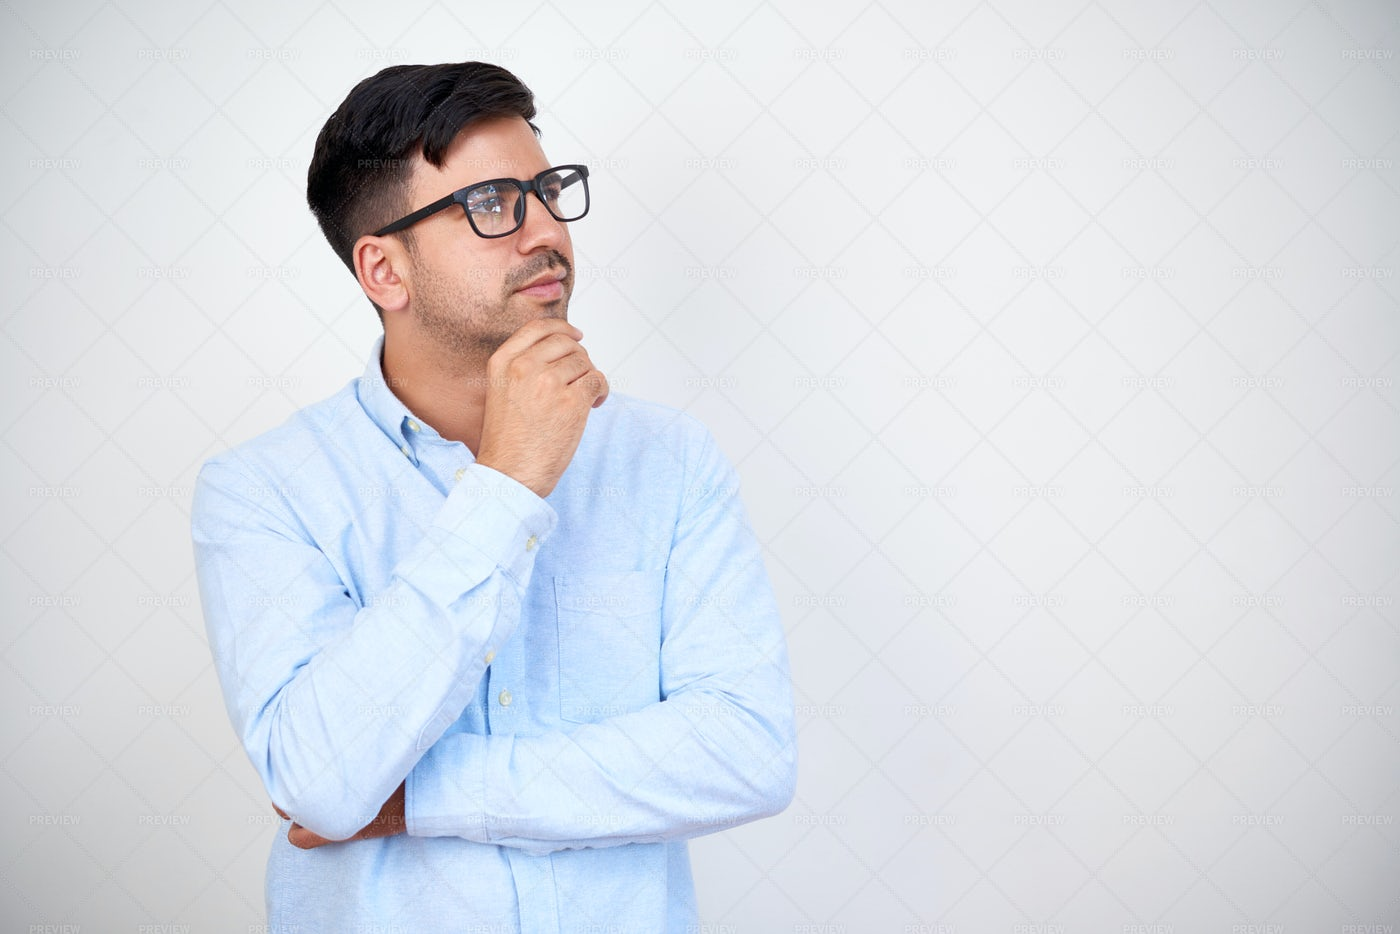 Pensive Young Entrepreneur In Glasses: Stock Photos